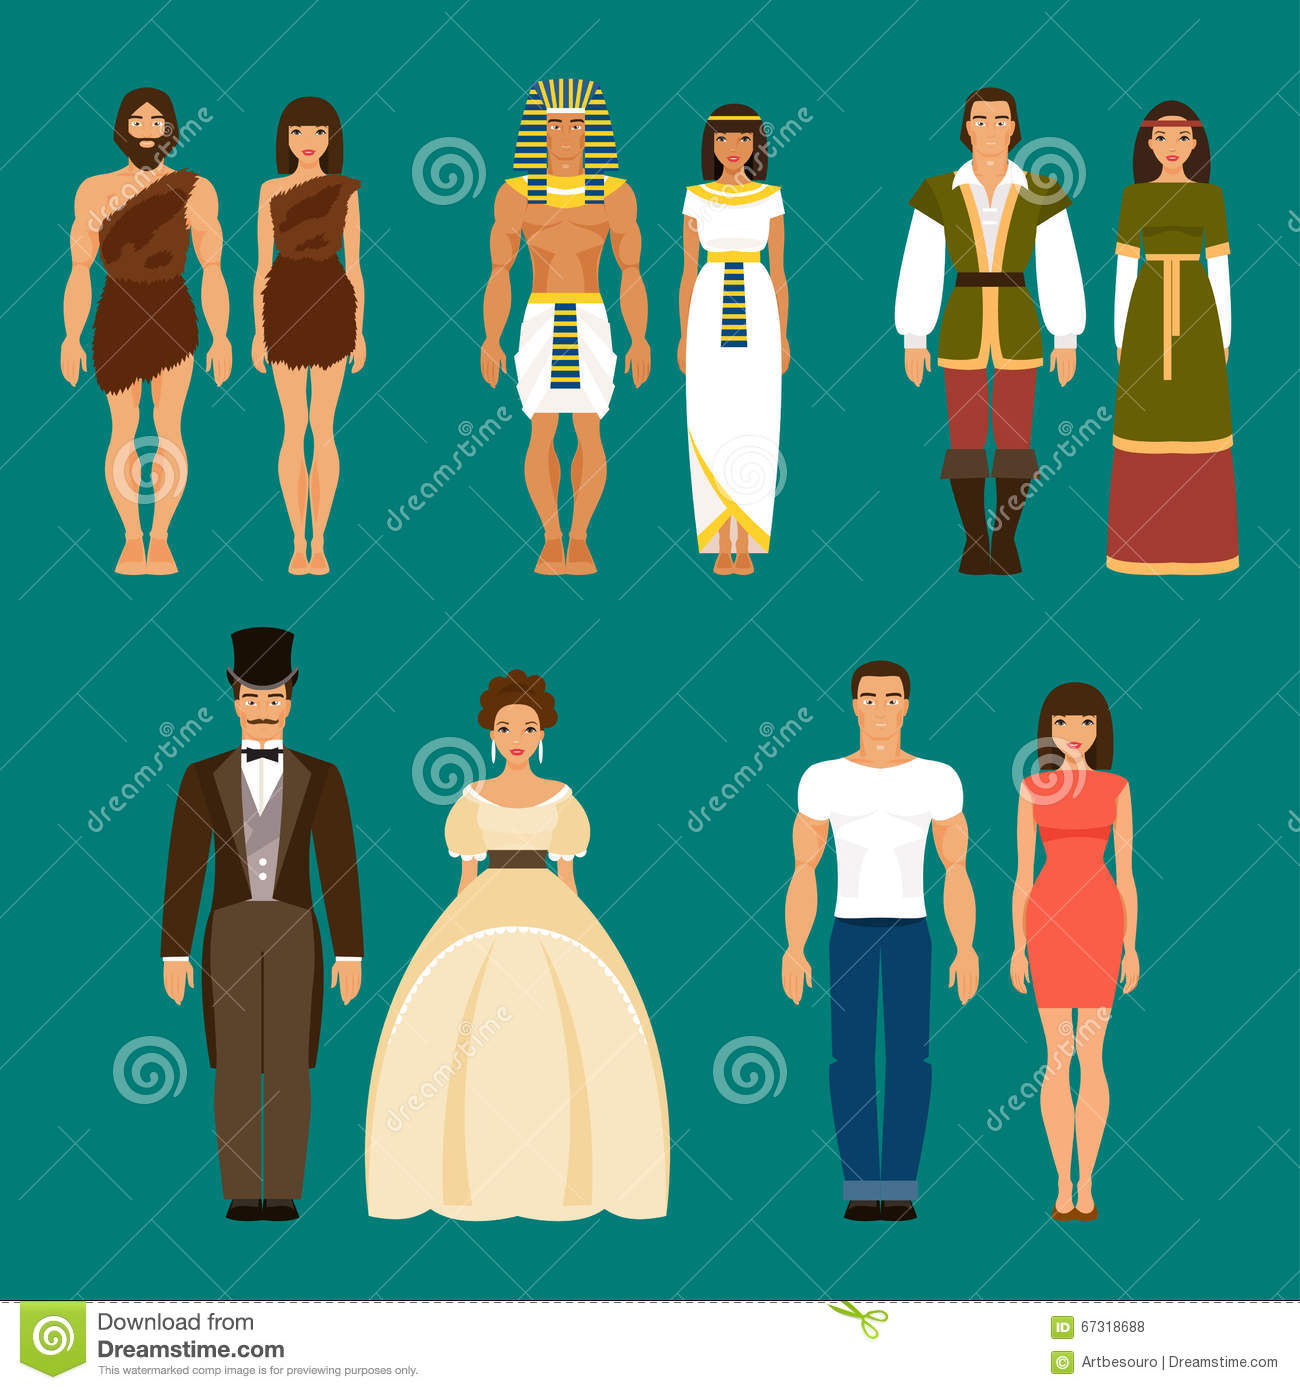 Development History The History Of Human Development Vector Illustration Stock Vector